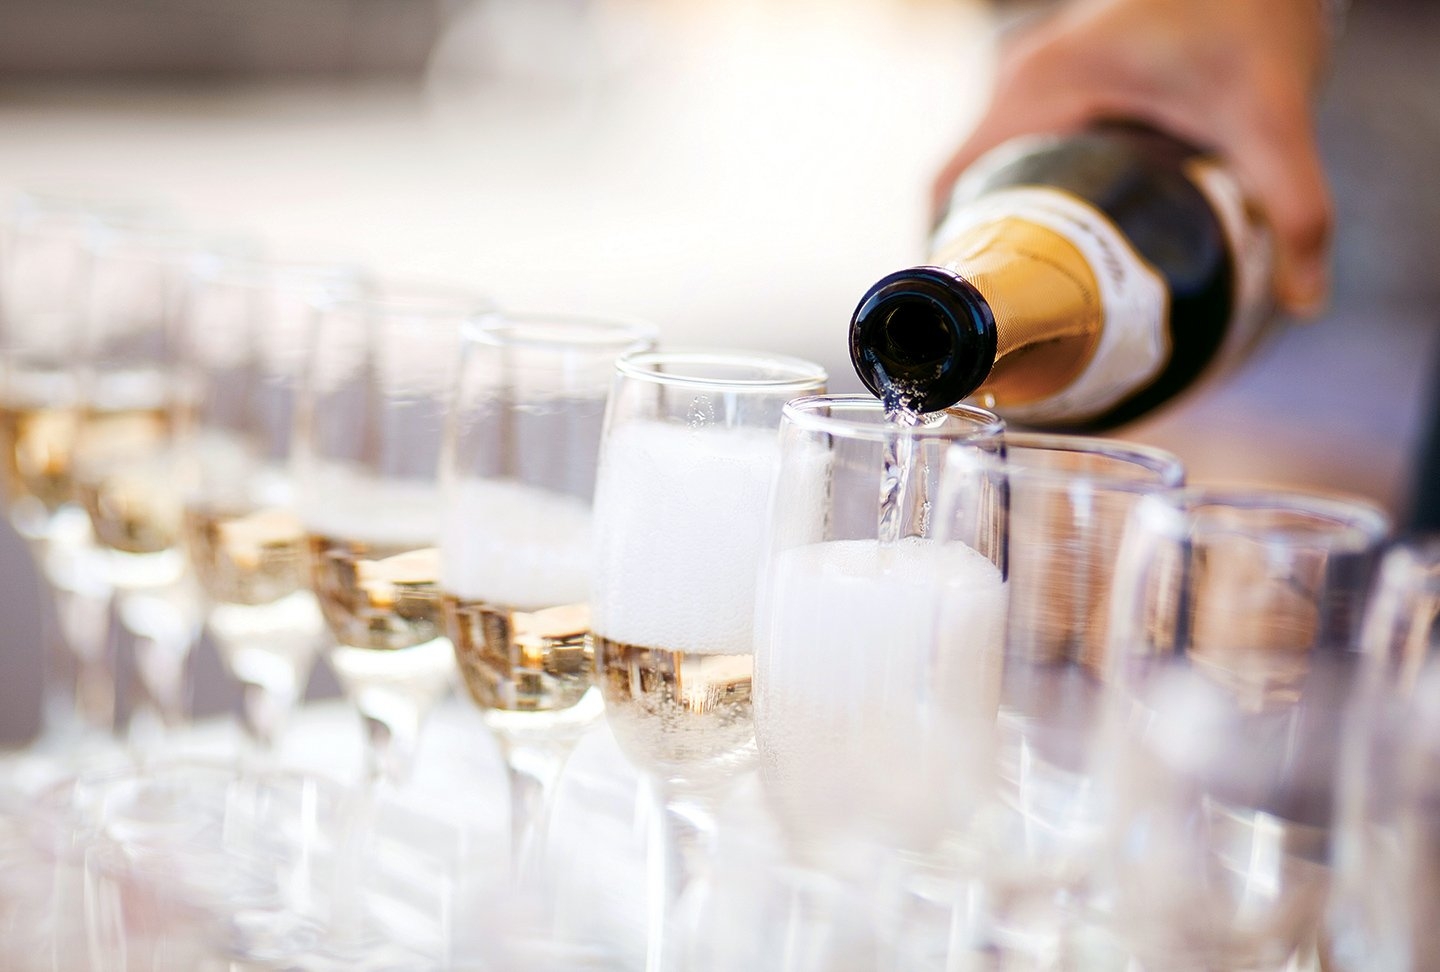 A long row of champagne flutes being filled